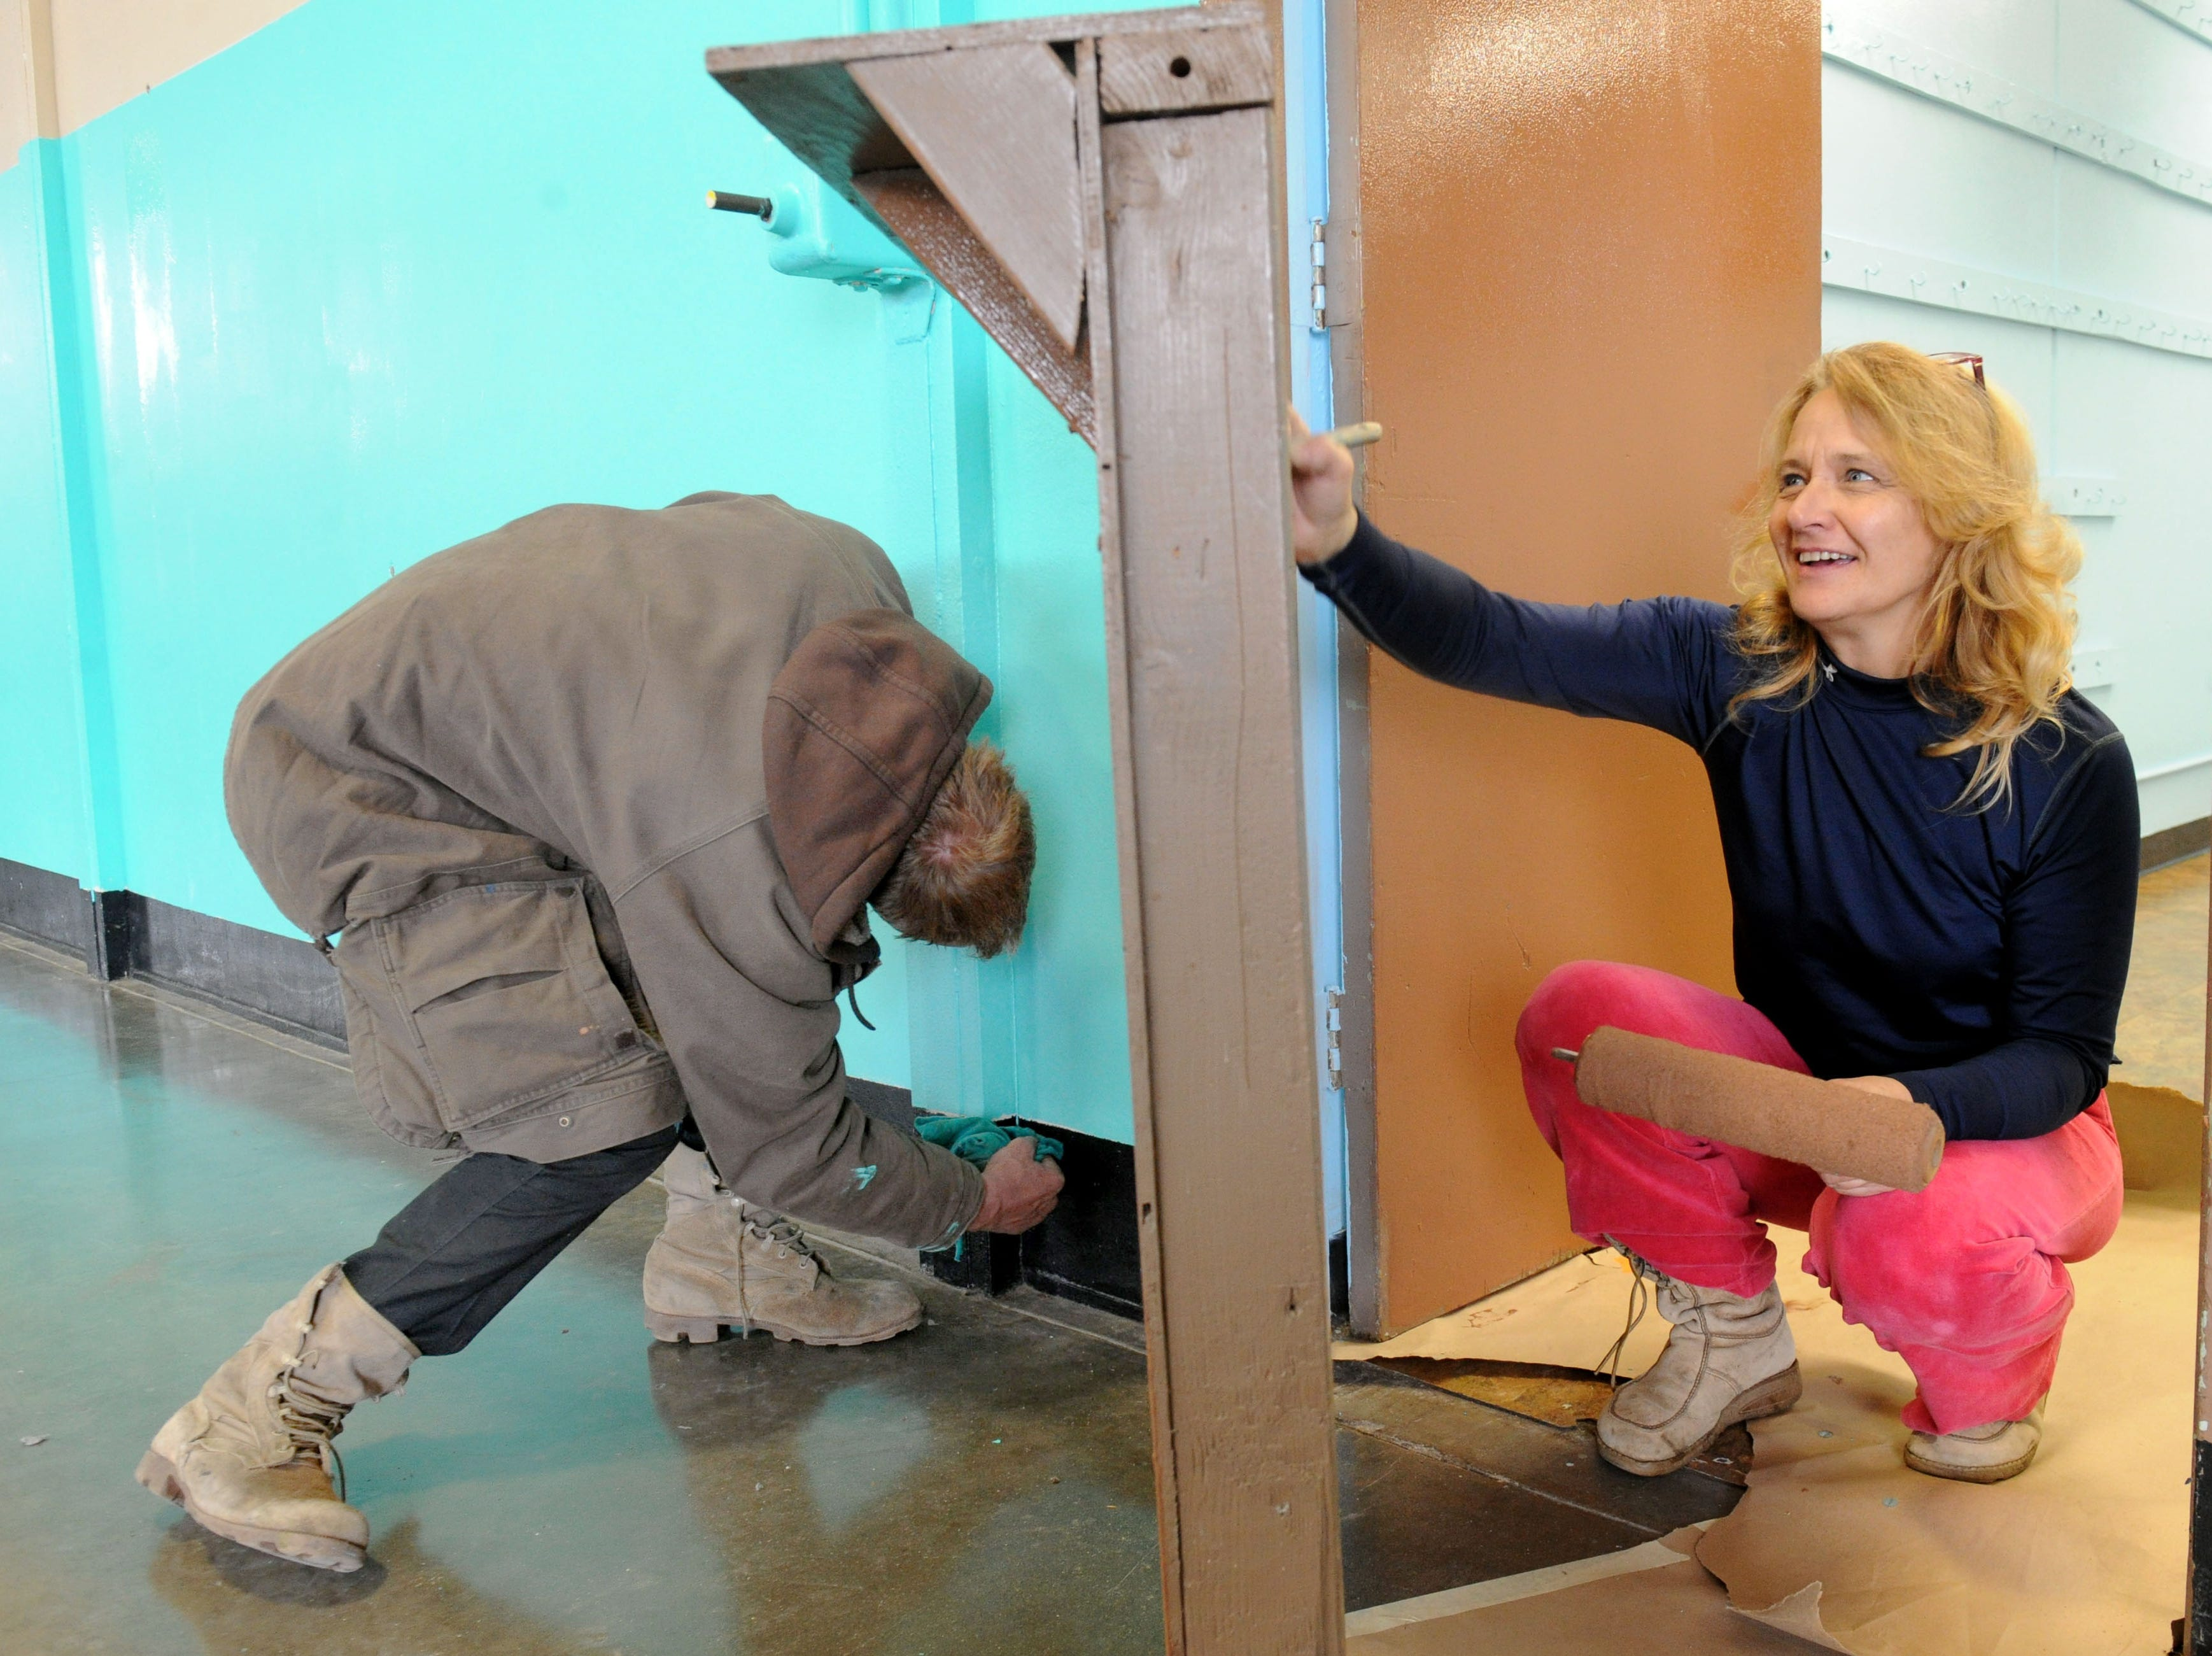 Aron Varney (left) and Terrin Howell, of Ojai, help paint the Oxnard National Guard Armory, which will be used as a homeless shelter. Varney is homeless and volunteered to help with the painting and the cleanup efforts. The planned 24-hour shelter on K Street is expected to open this month when staff has been hired but it opened temporarily Saturday night because of  rain.